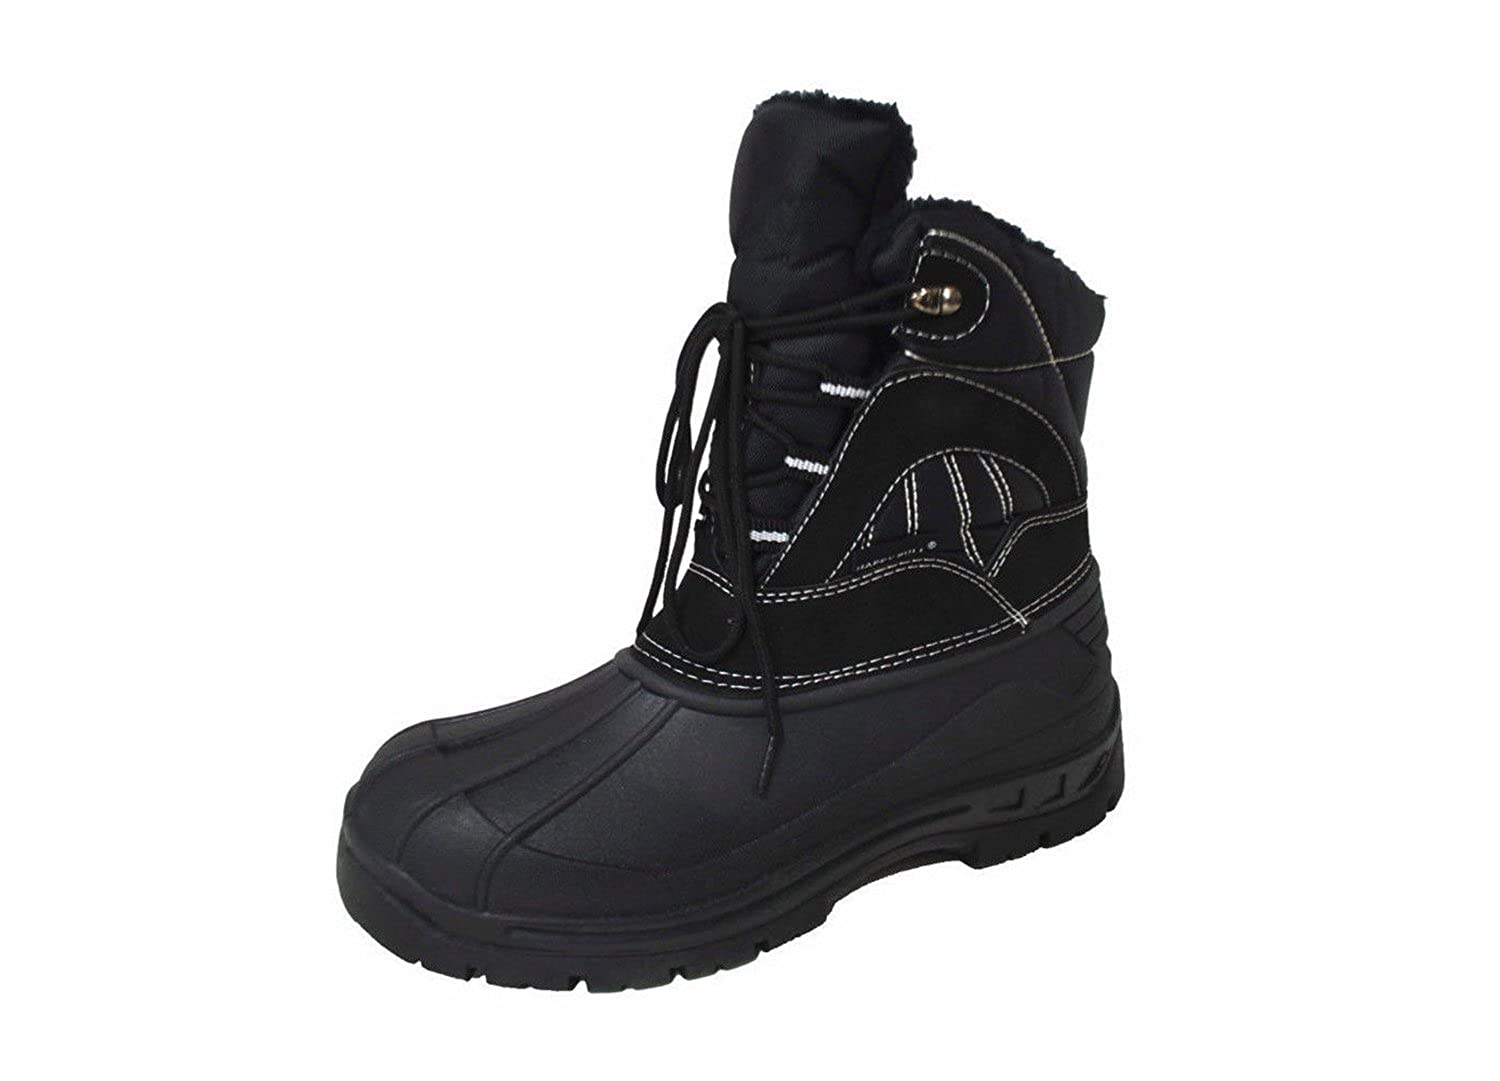 Men's Water Resistant Lace-up Comfort Cold Winter Snow Boots Black (A-Y05)